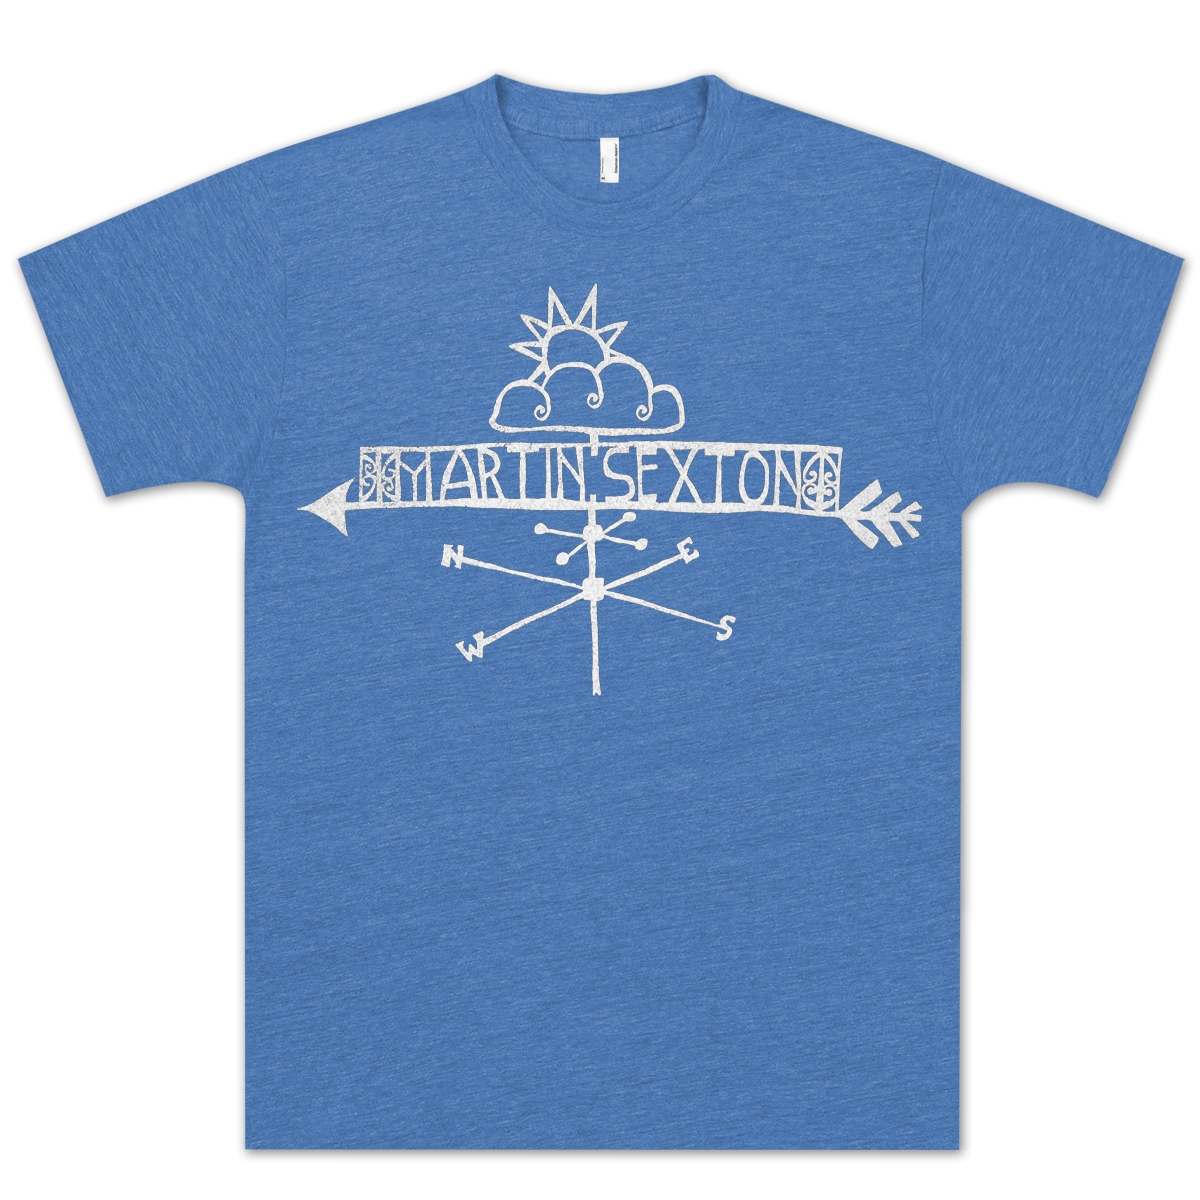 Unisex Royal Falls Like Rain Vintage T-shirt.